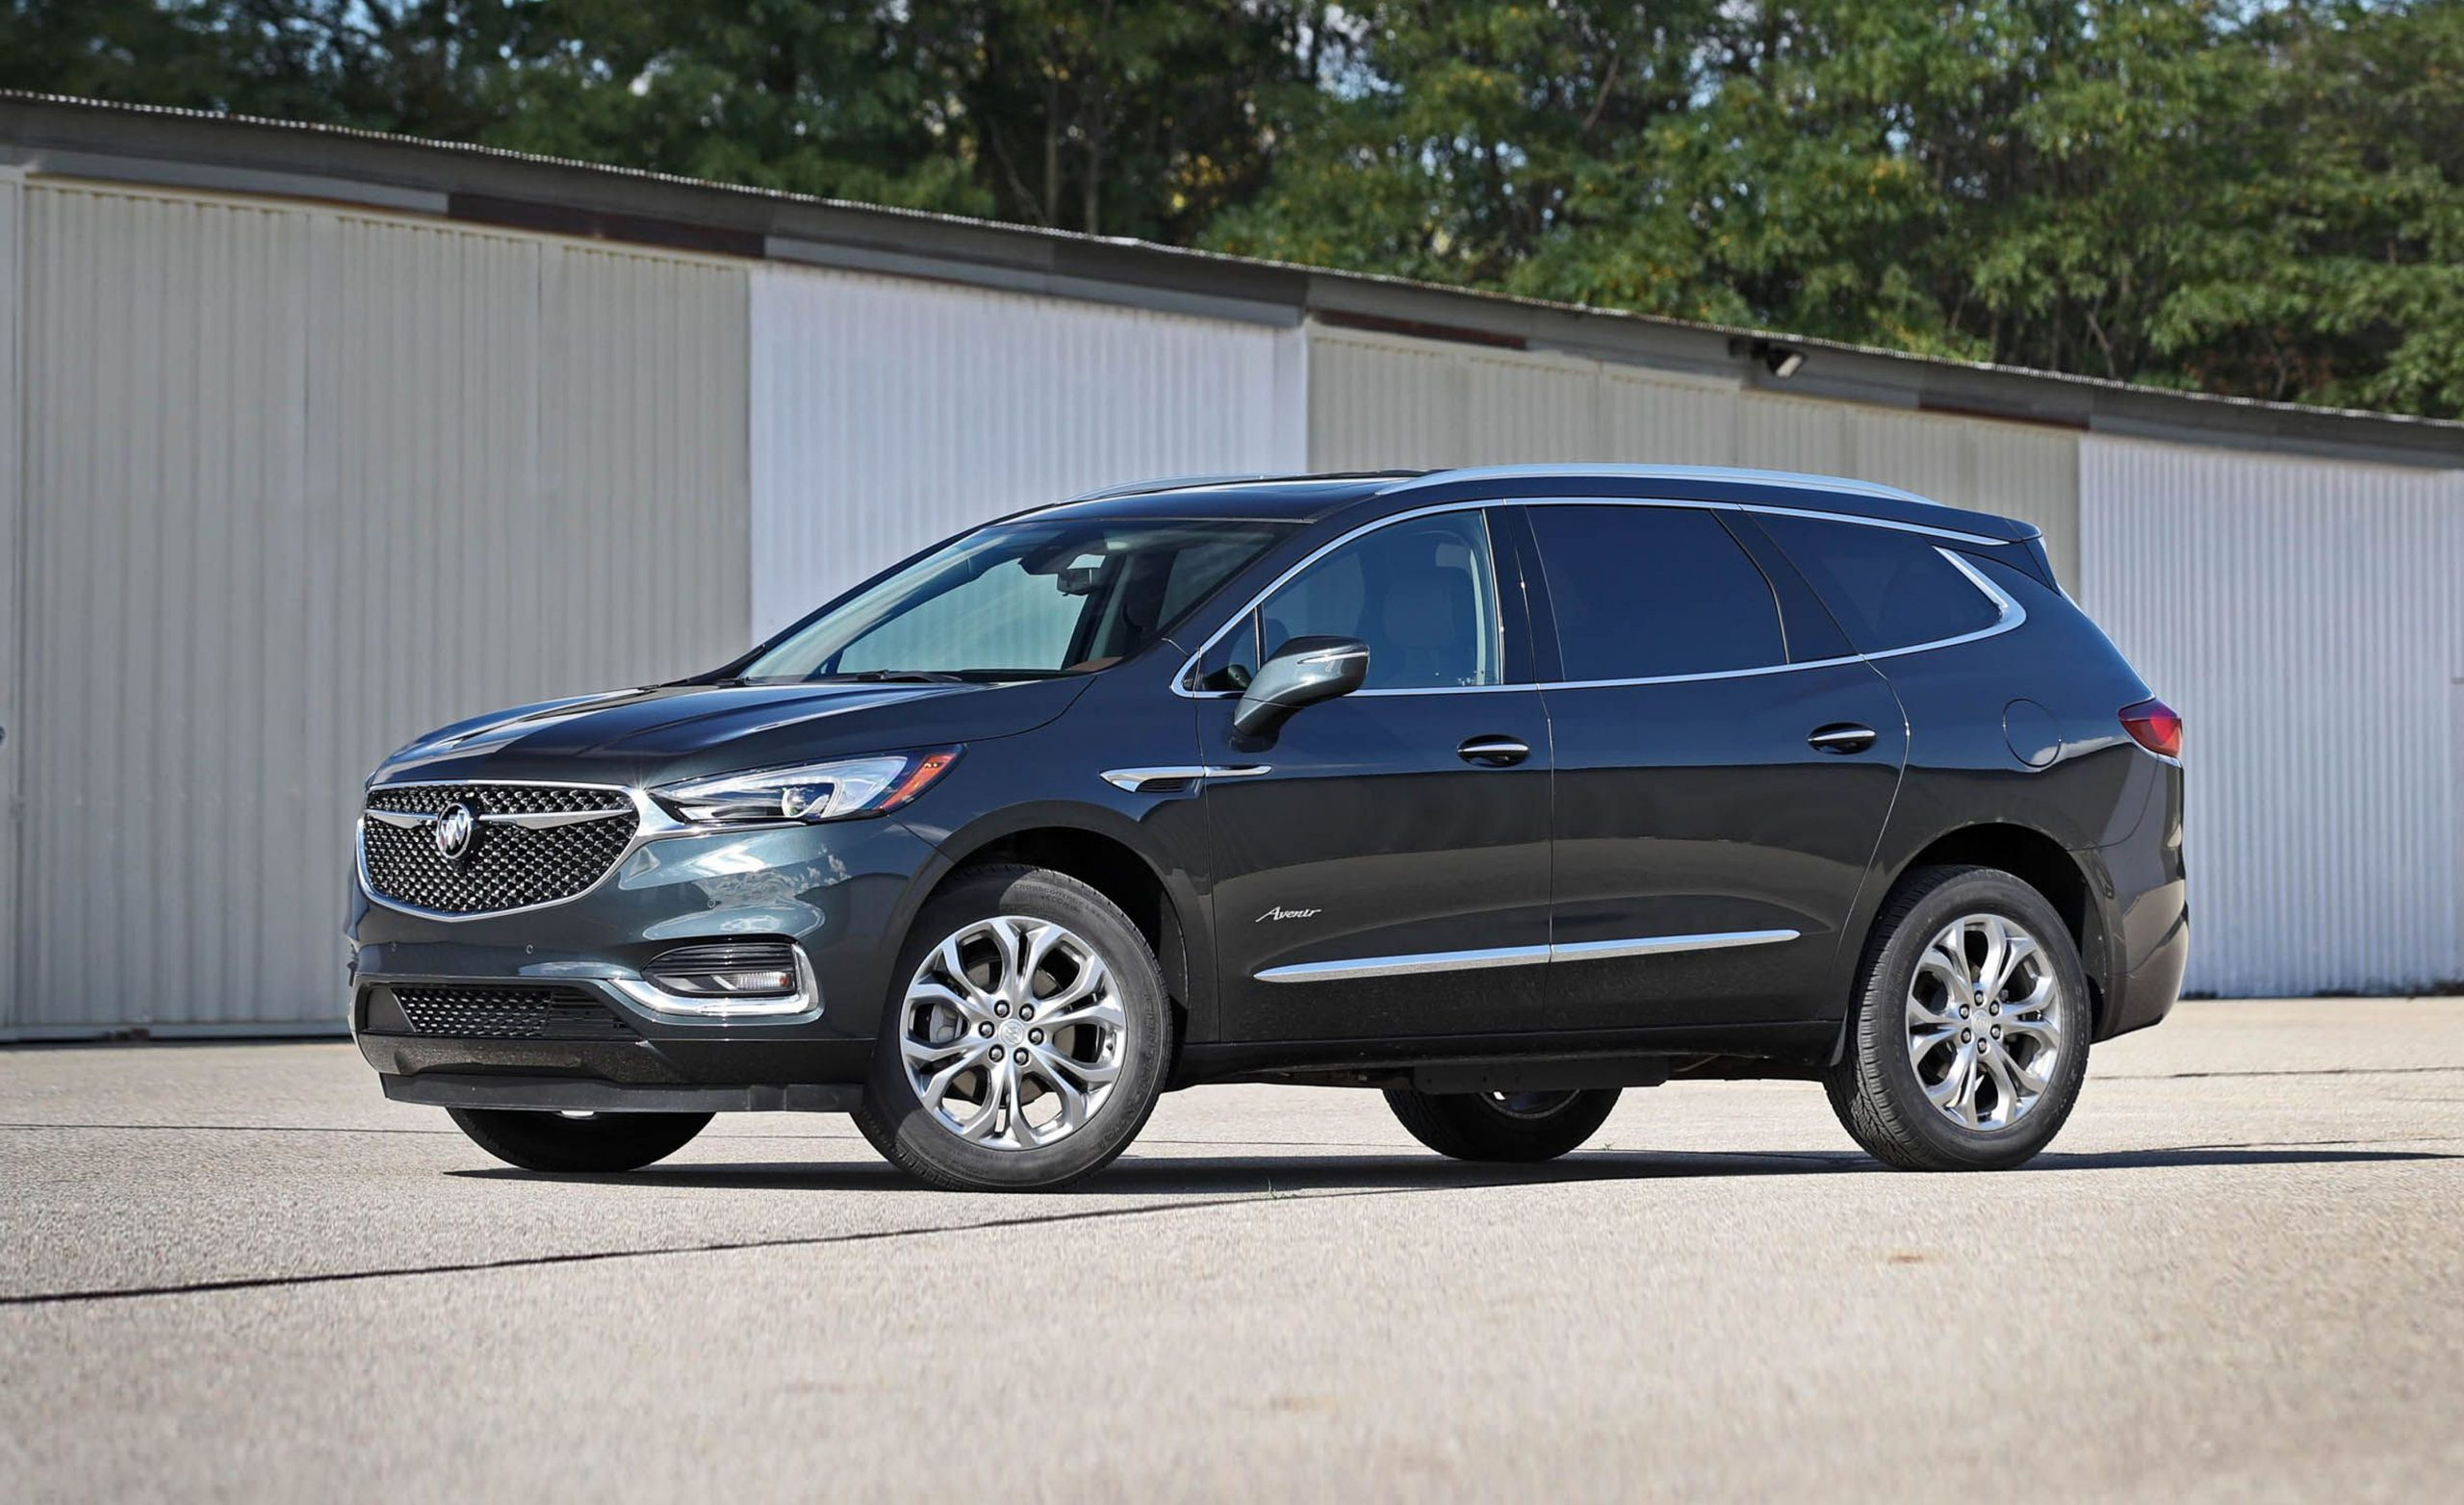 2019 Buick Enclave Review, Pricing, And Specs New 2021 Buick Enclave Length, Leather, Lease Price